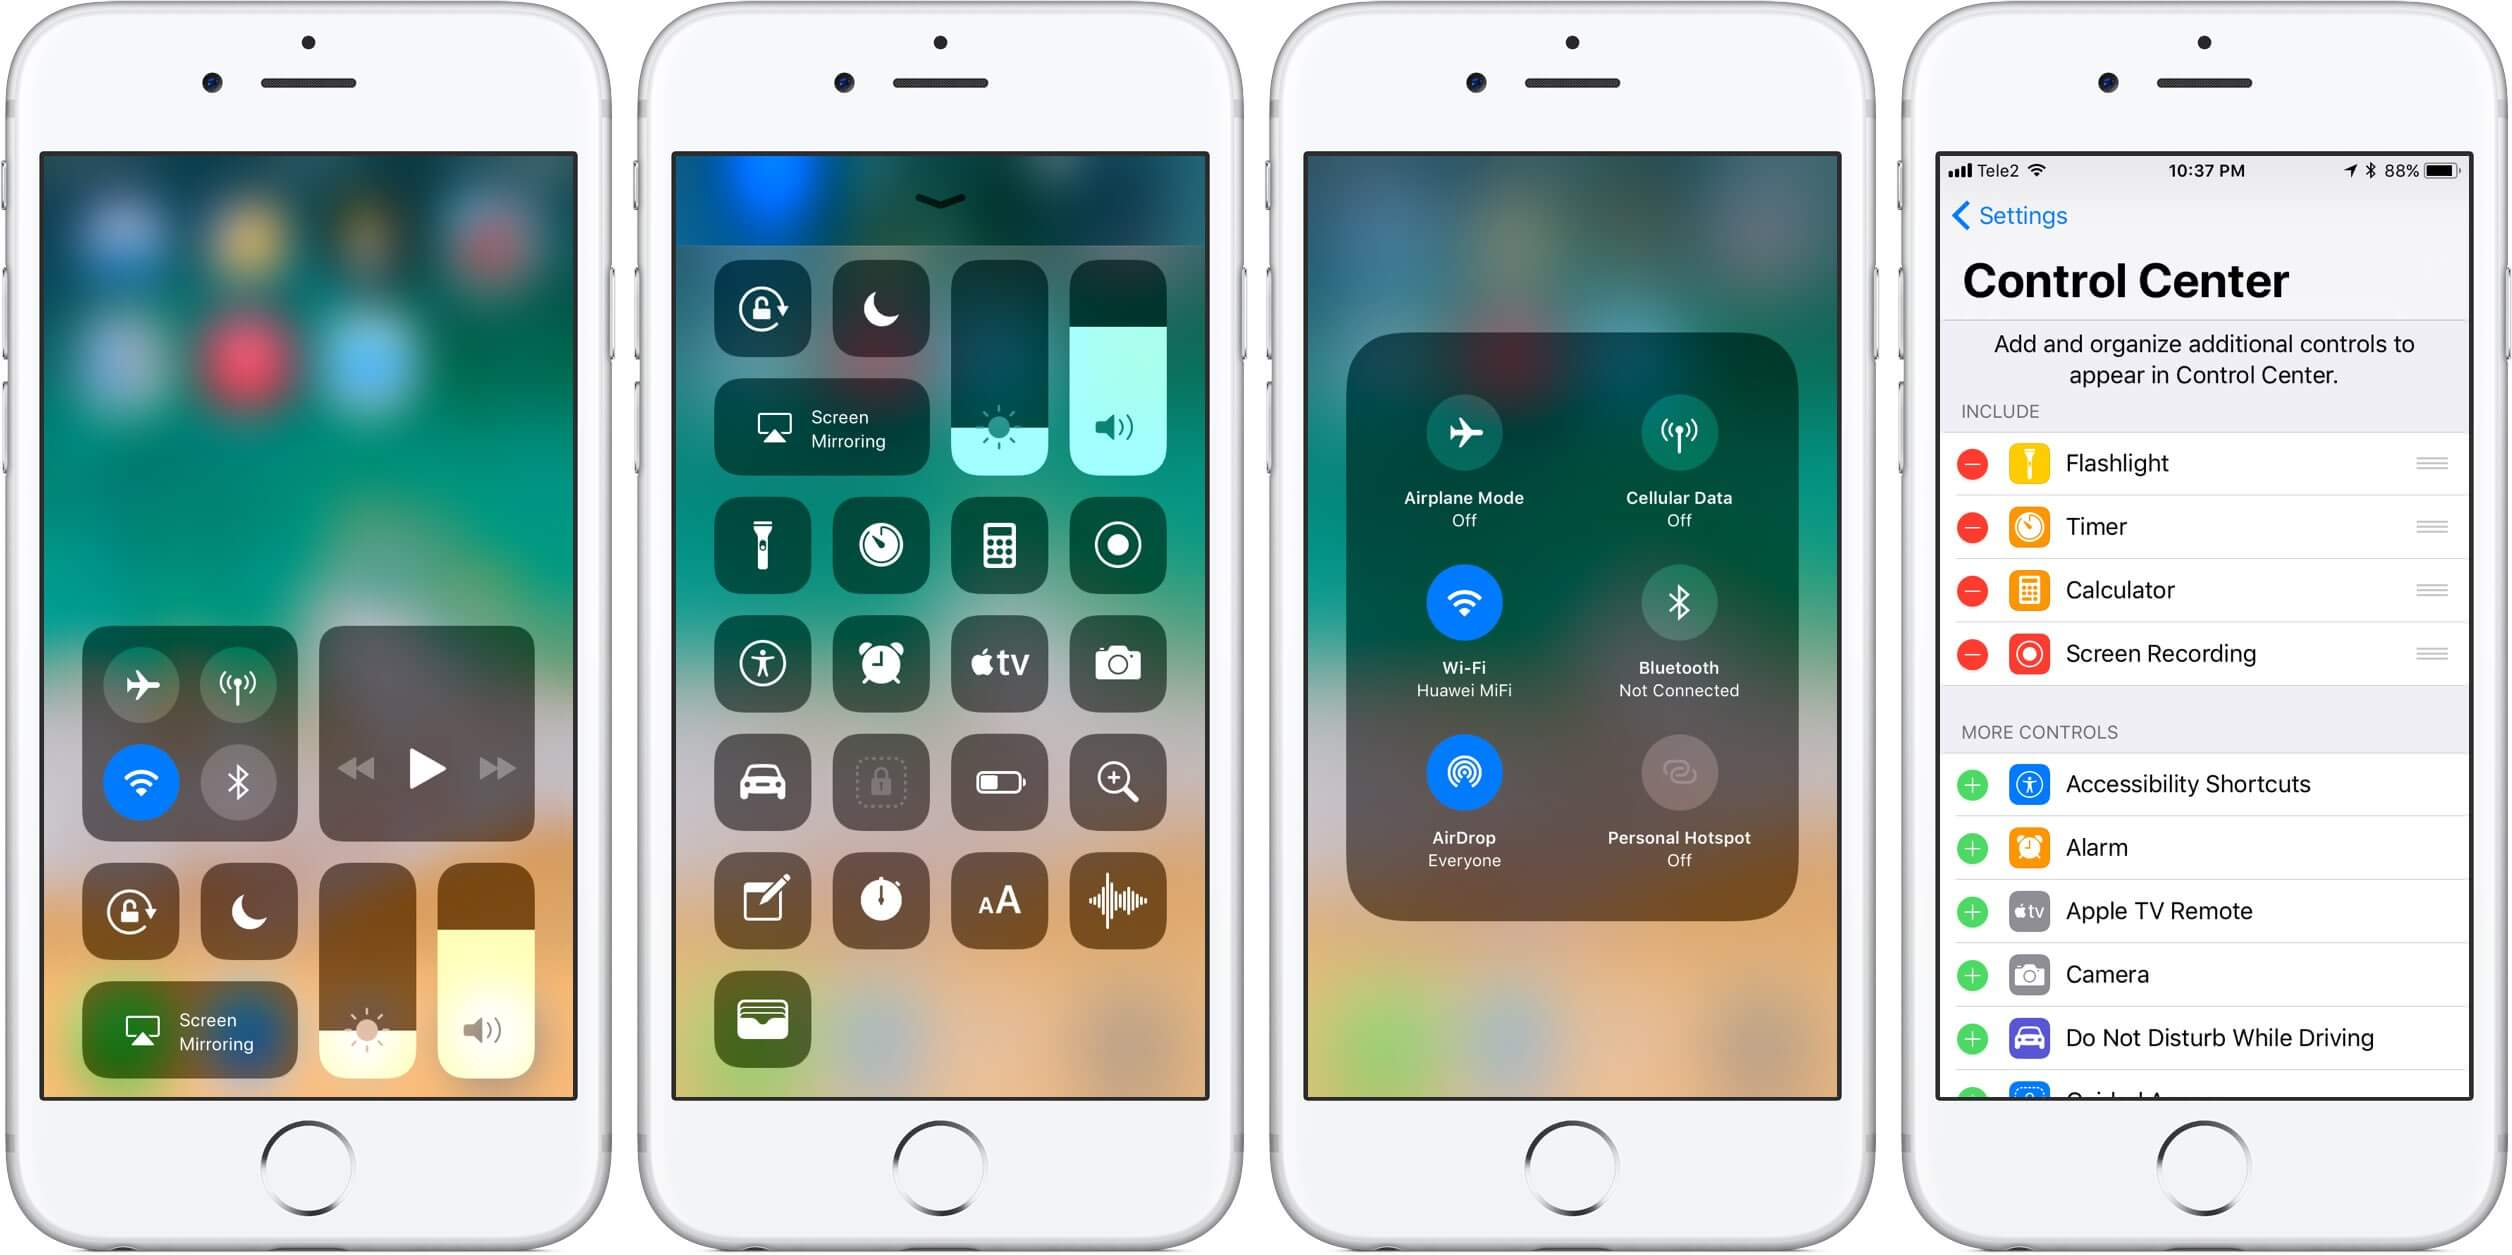 Customize iPhone Control Center in iOS 10 And 11